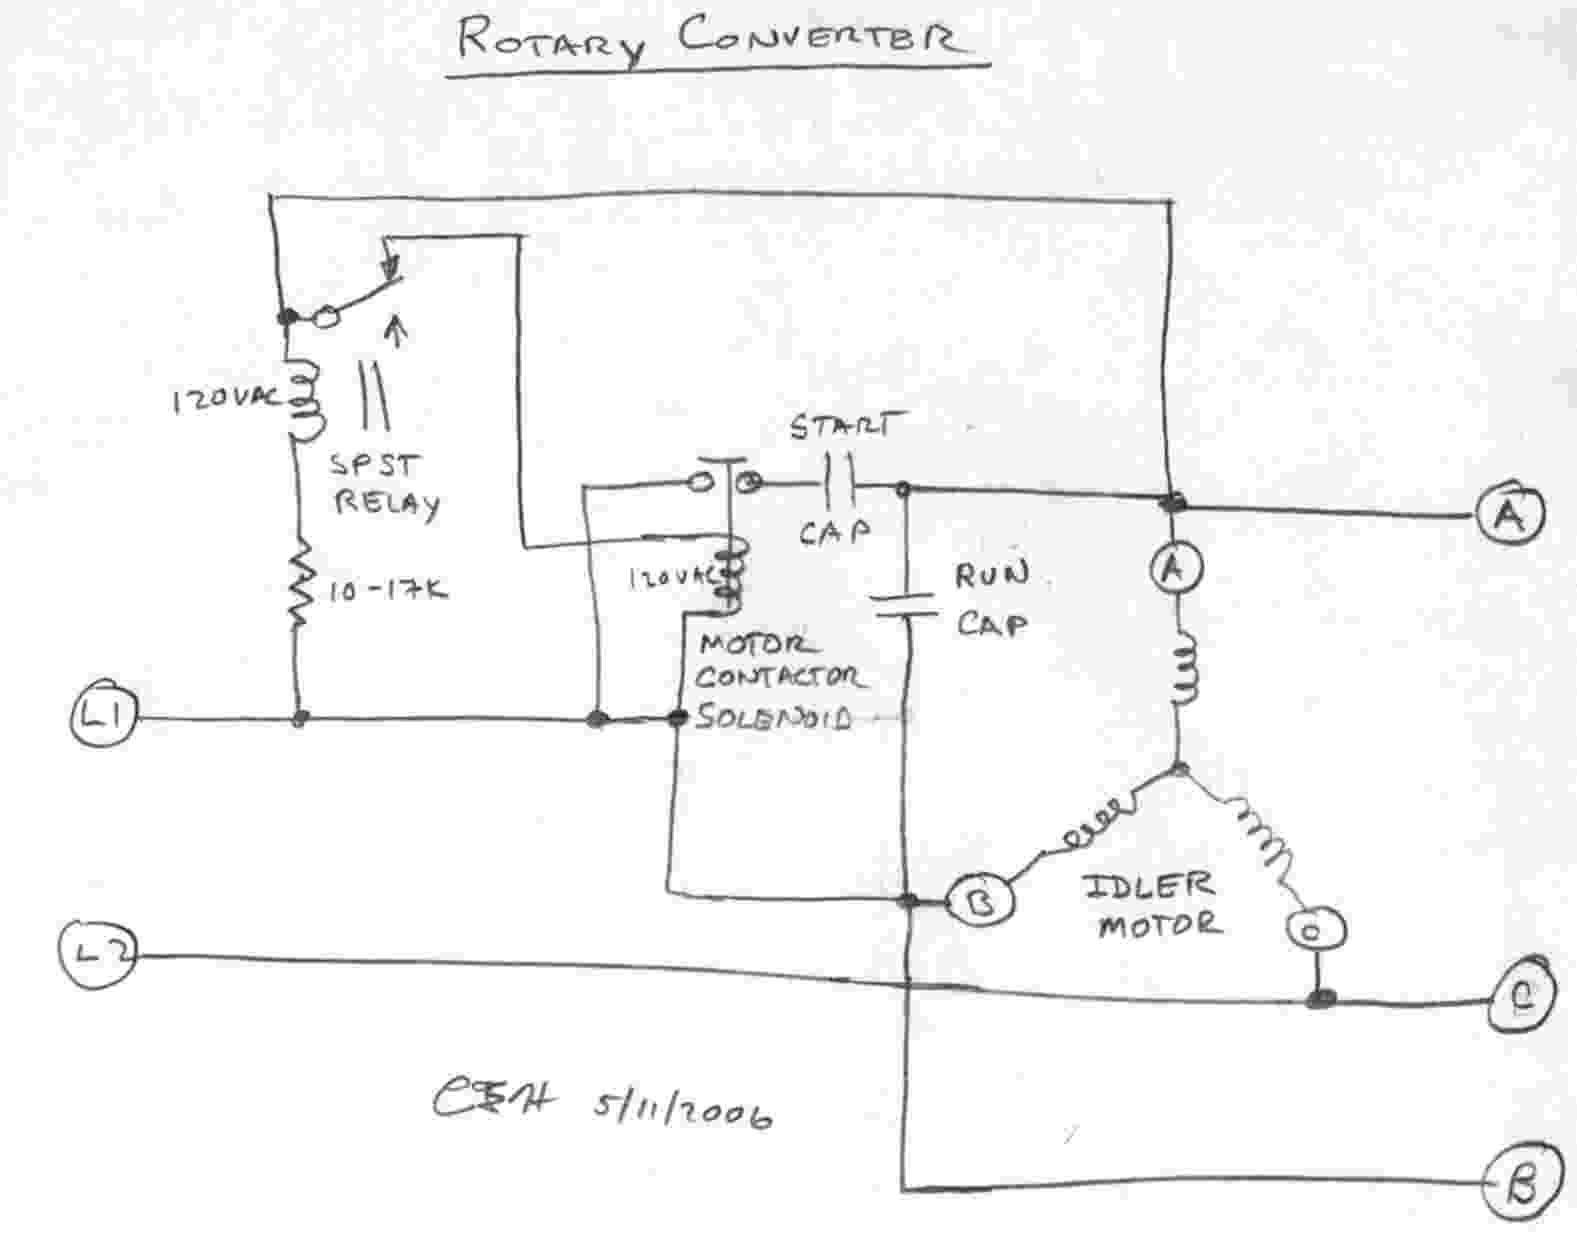 rotary phase converter wiring diagram kenmore dryer model 110 3 converters schematic